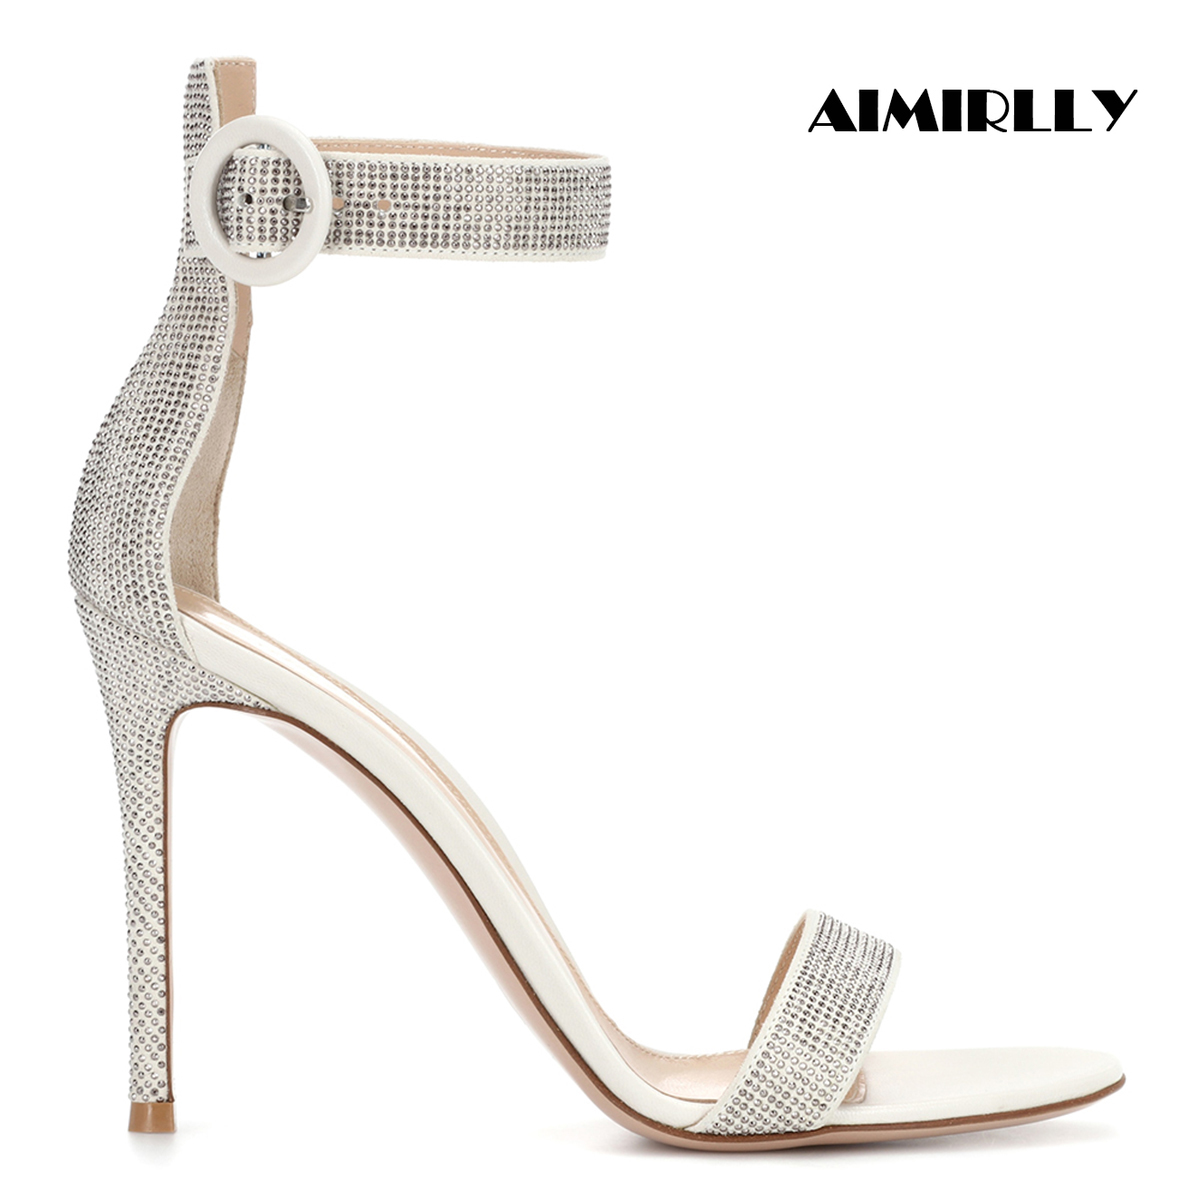 Aimirlly Women Shoes Peep Toe High Heels Sandals Summer Evening Party Wedding Bridal Dress Silver Crystal Buckle Strap